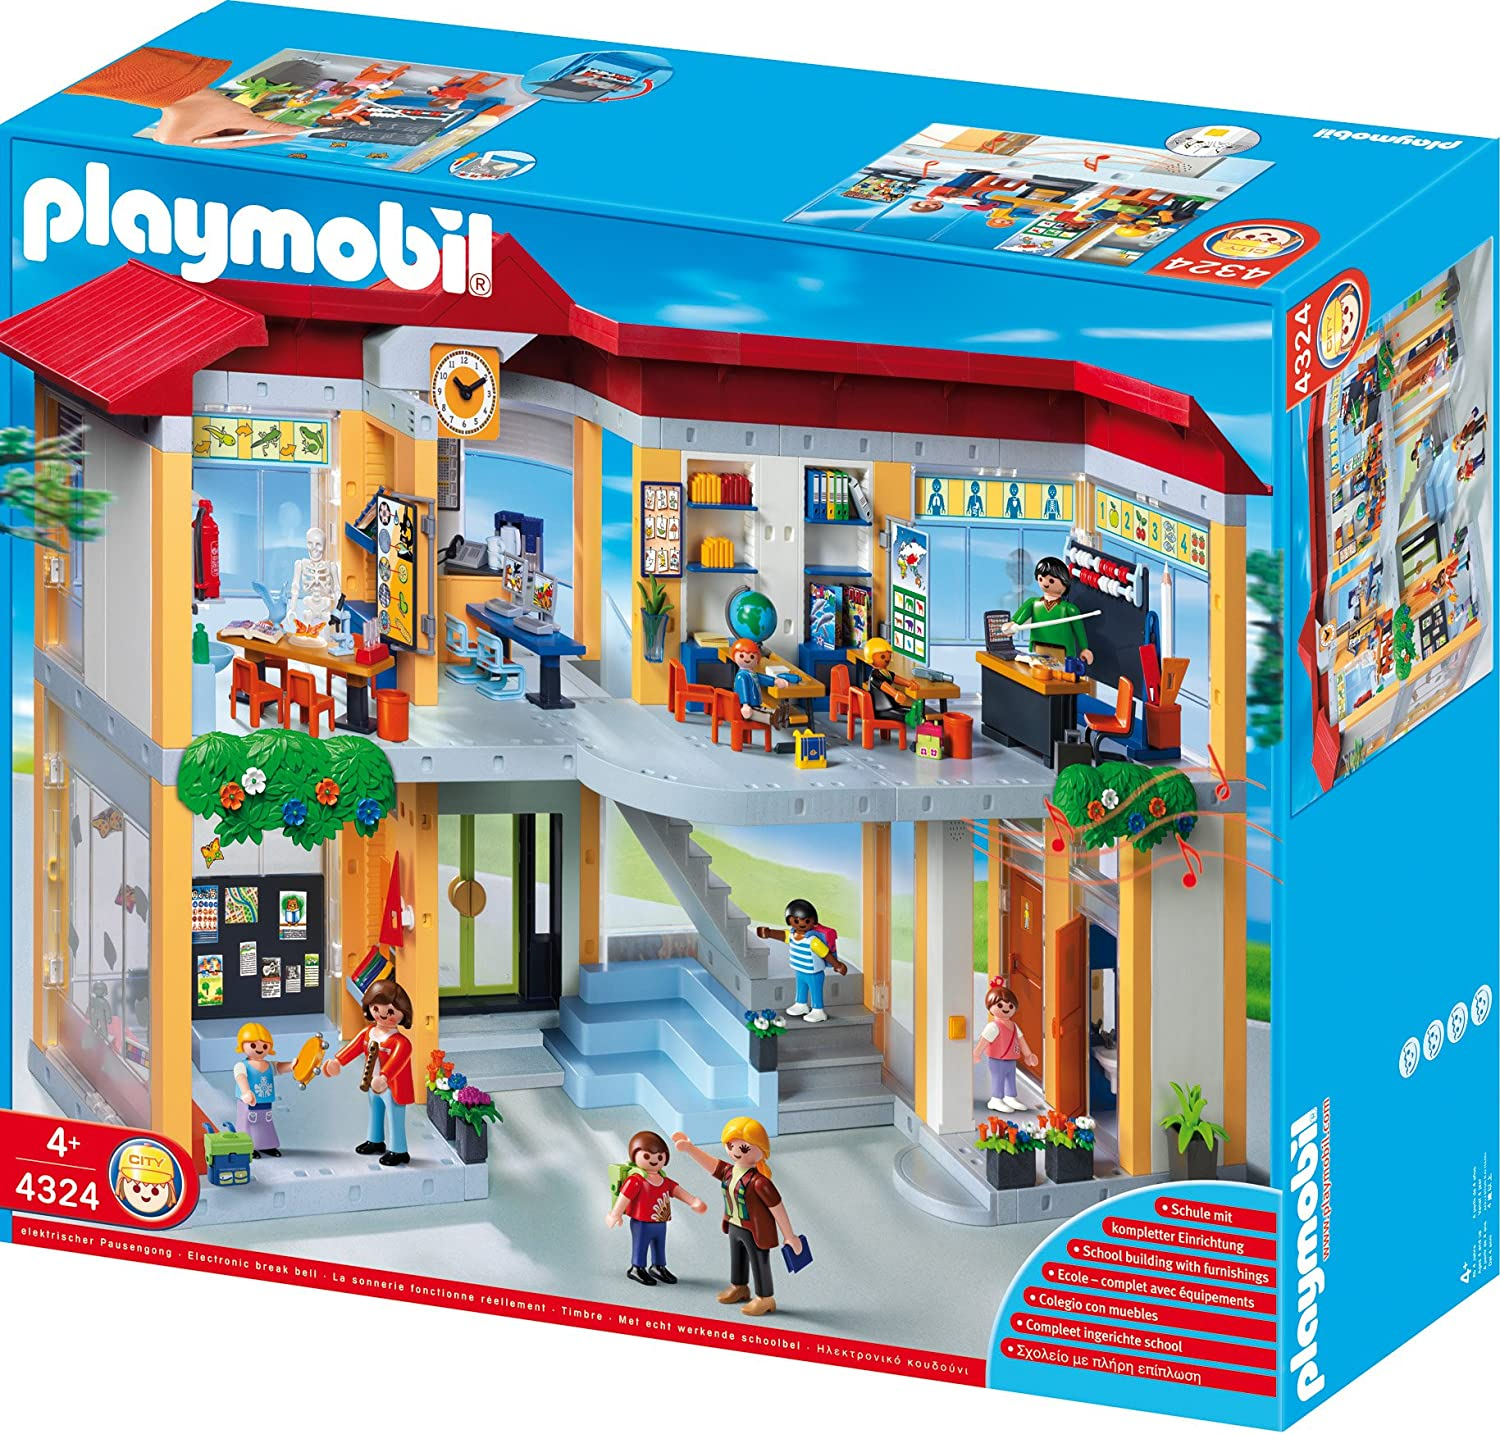 PLAYMOBIL Furnished School Building Construction Set